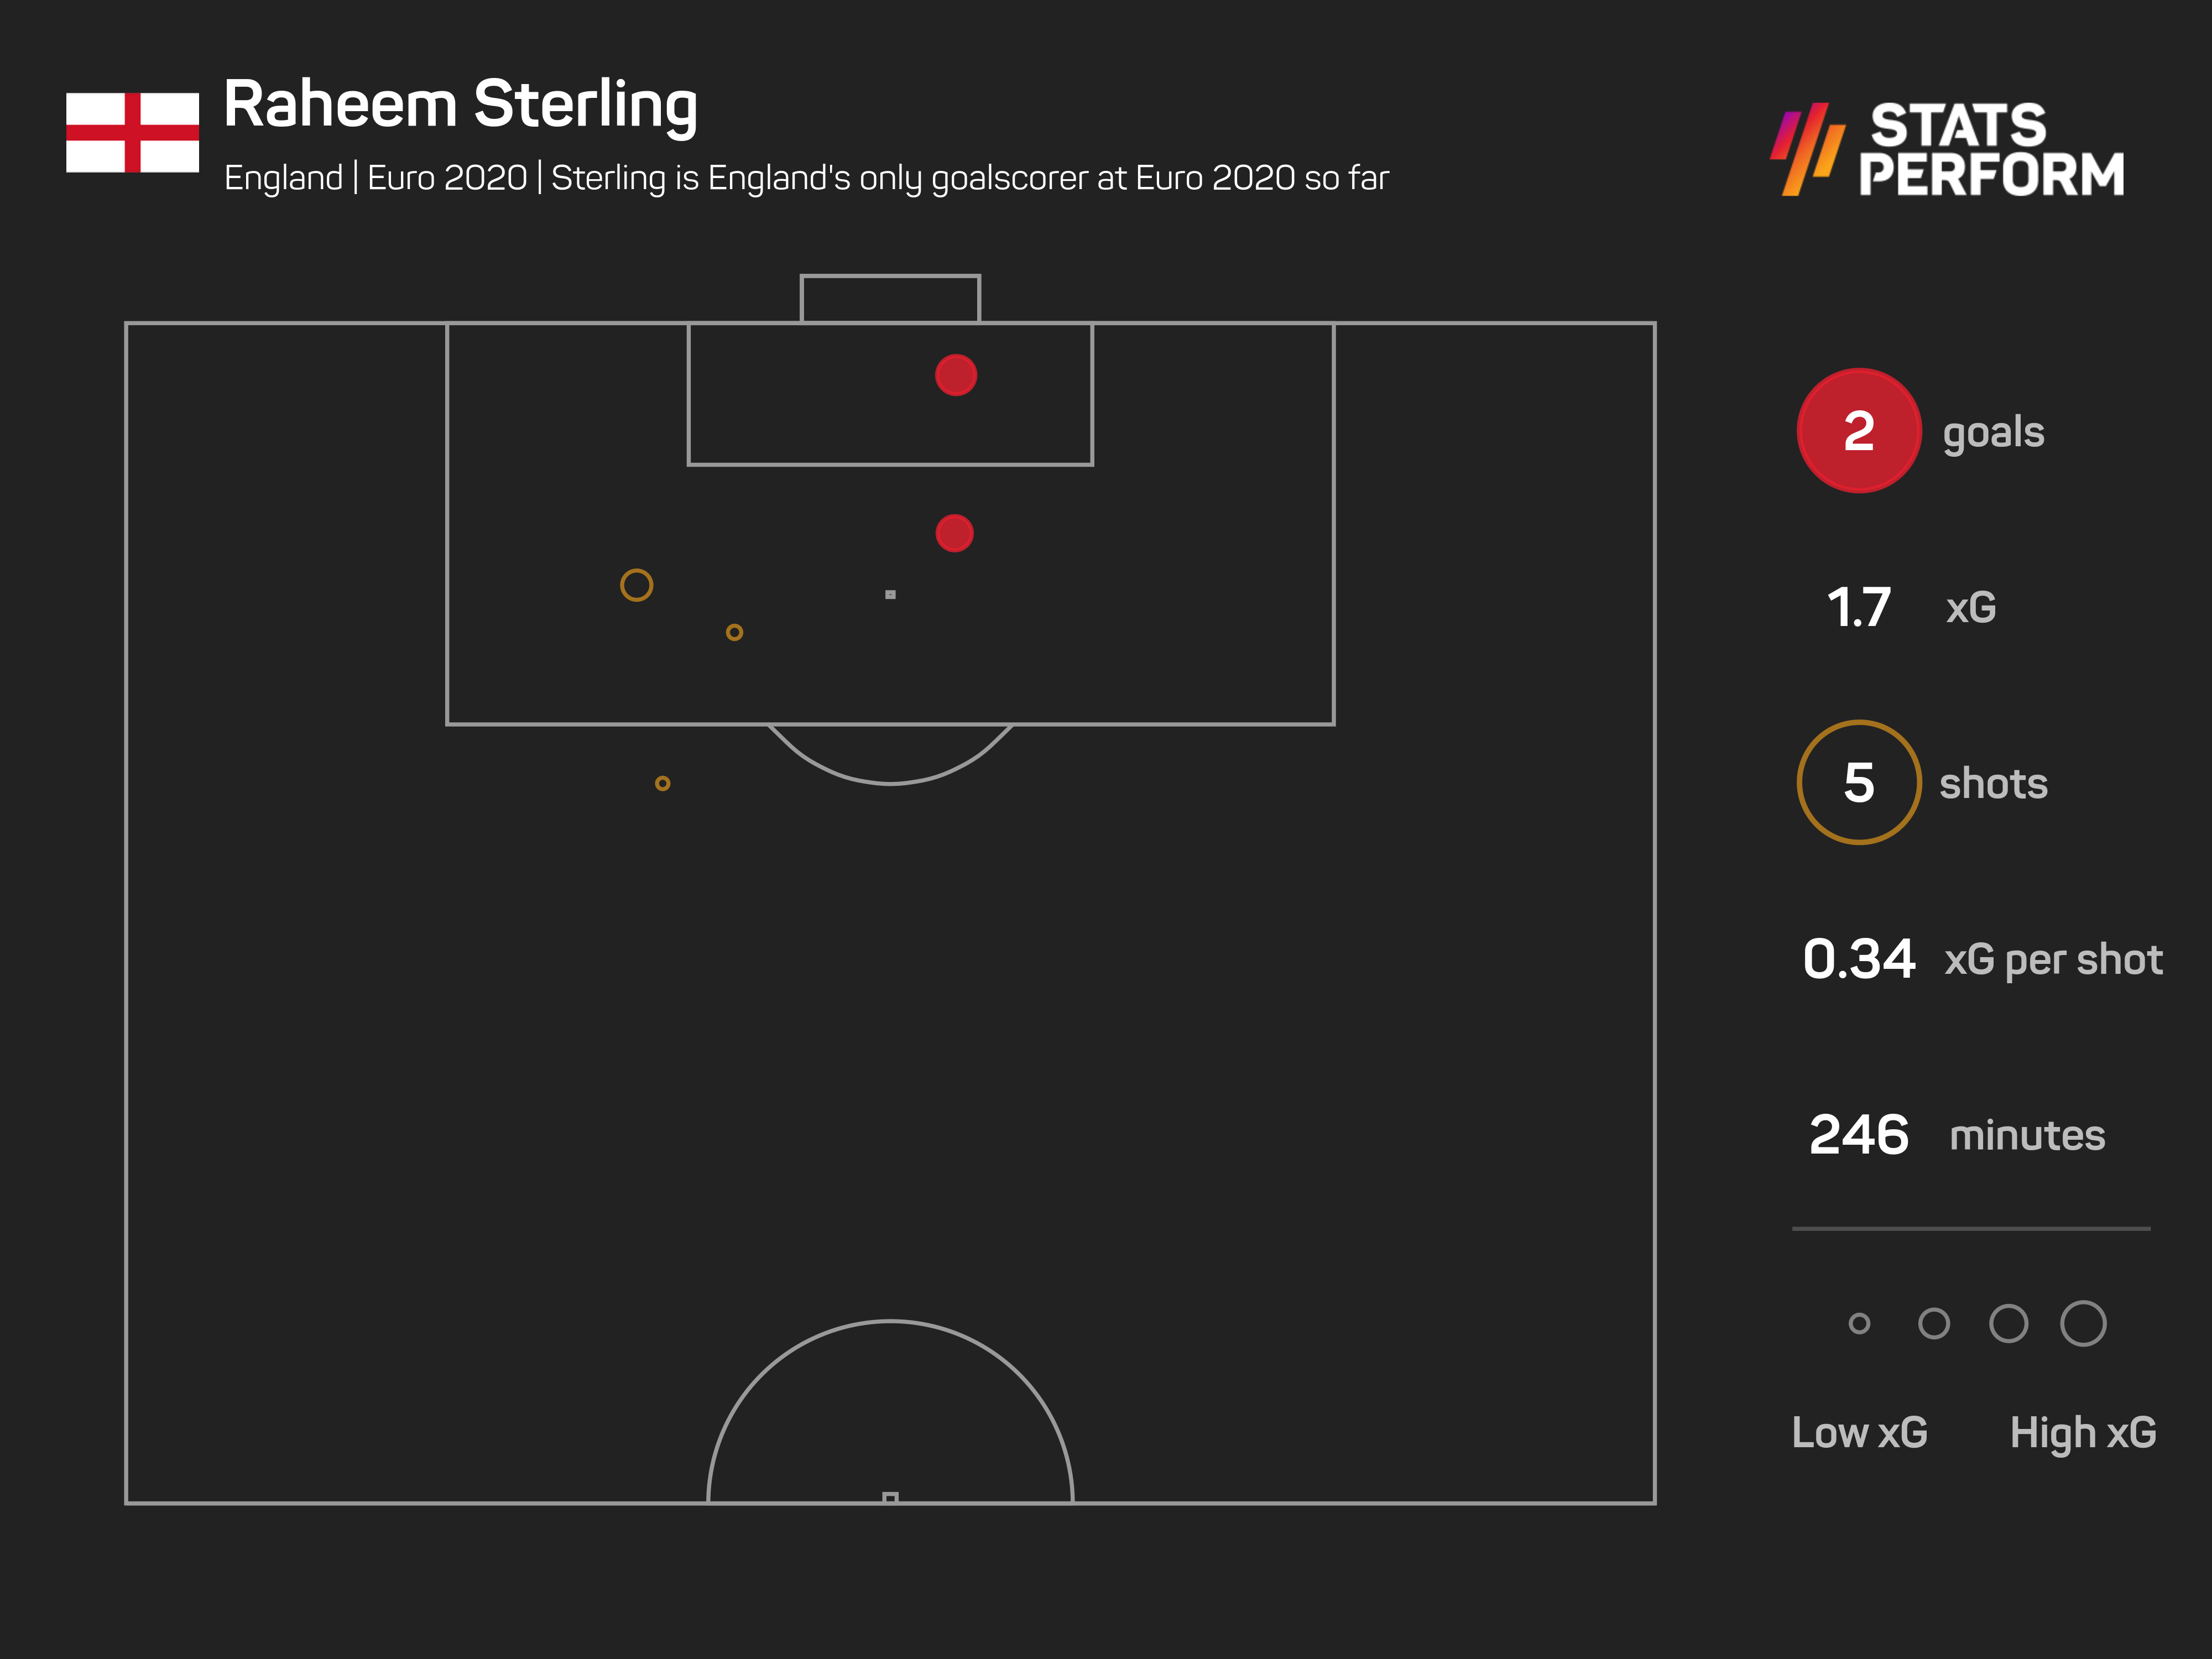 Sterling is England's only goalscorer at Euro 2020 so far